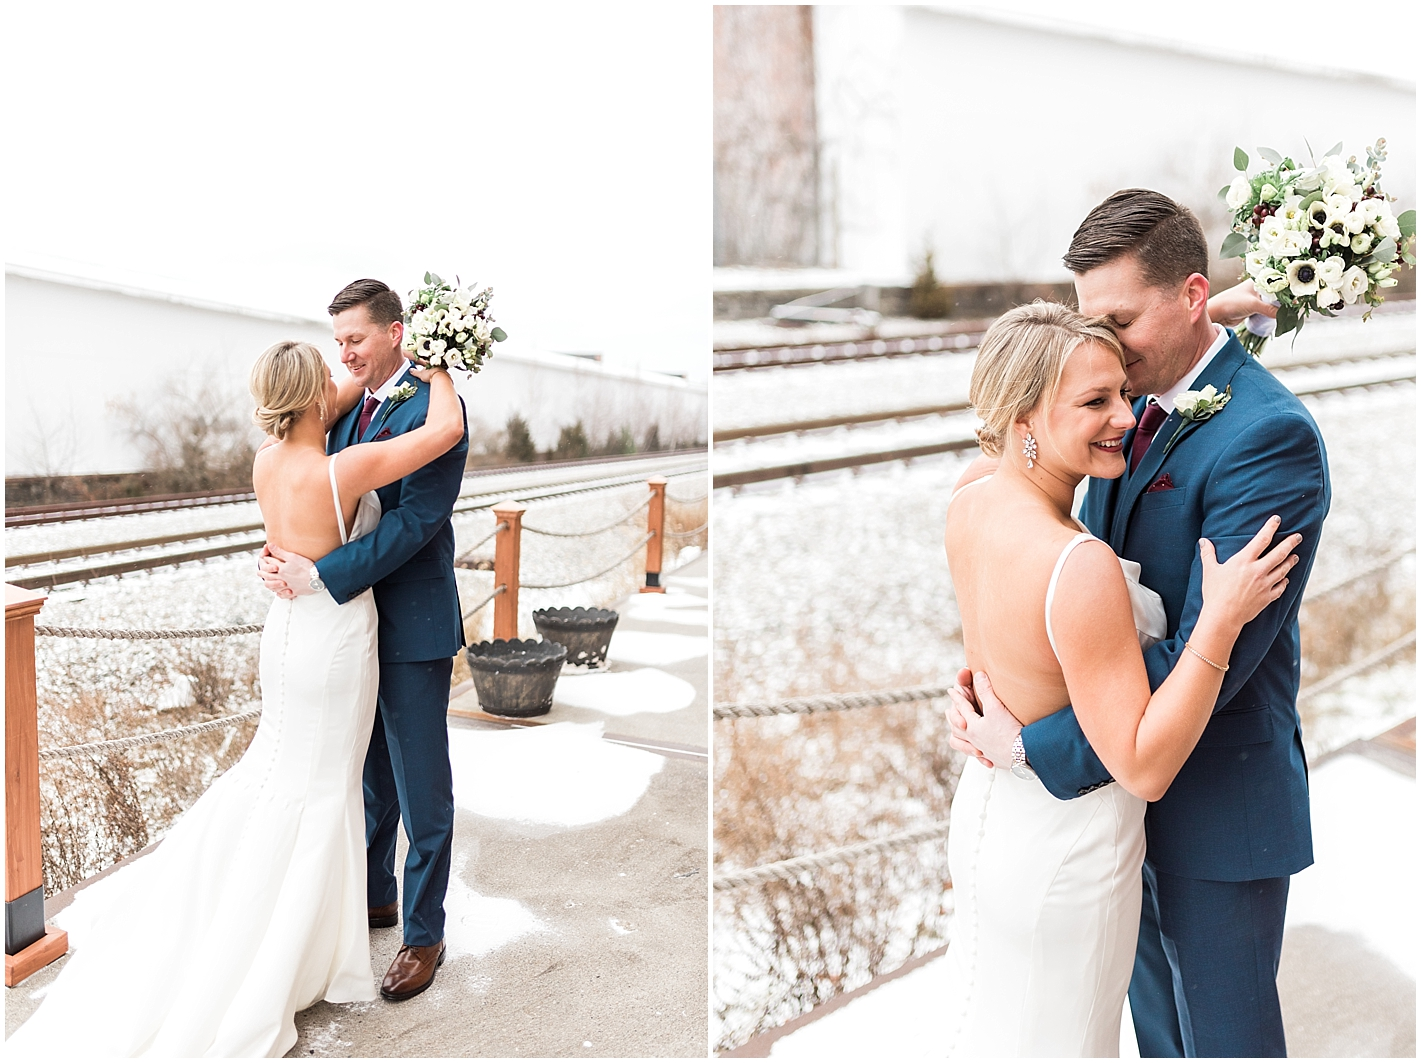 Wedding Day Portraits by Alyssa Parker Photography